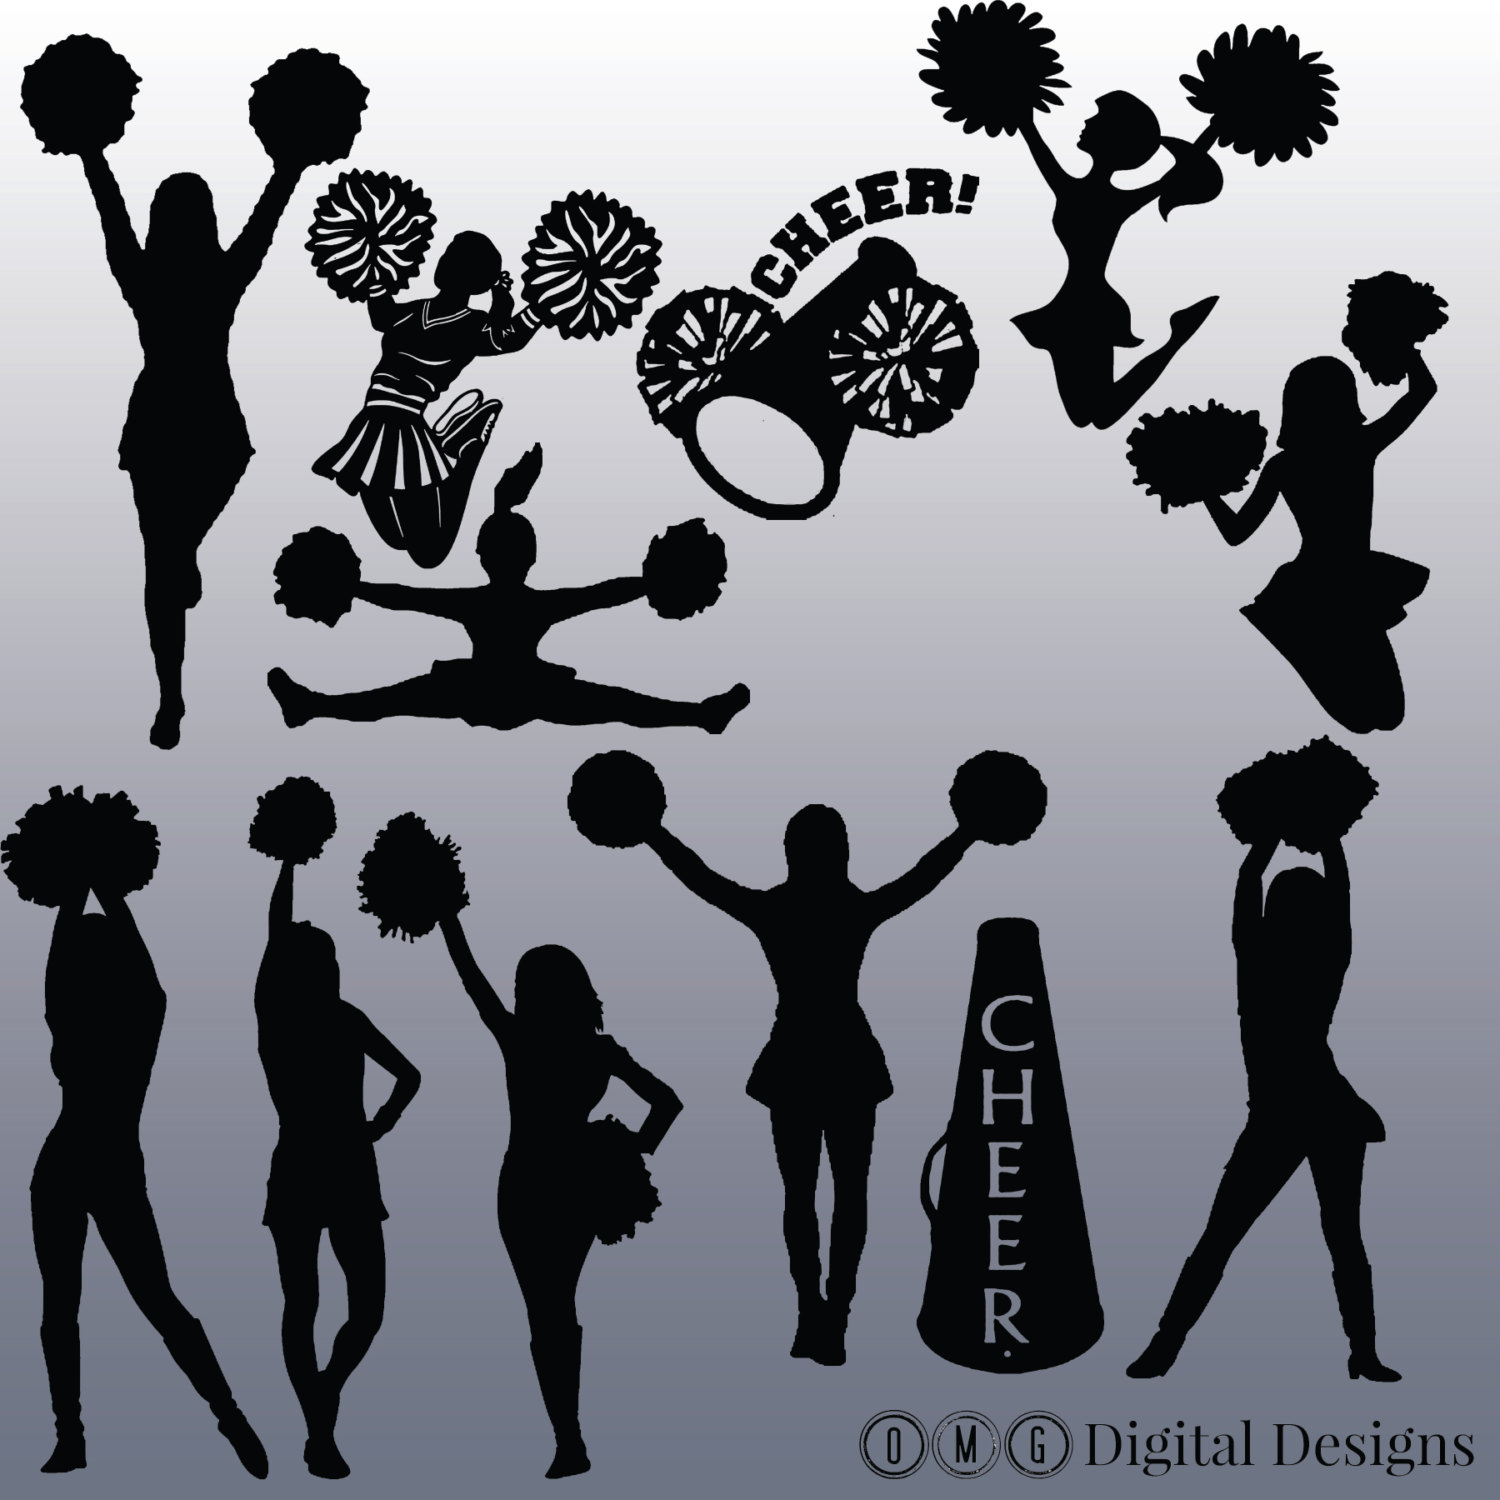 12 Cheerleader Silhouette Digital Clipart Images, Clipart Design Elements, Instant Download, Black Silhouette Clip art